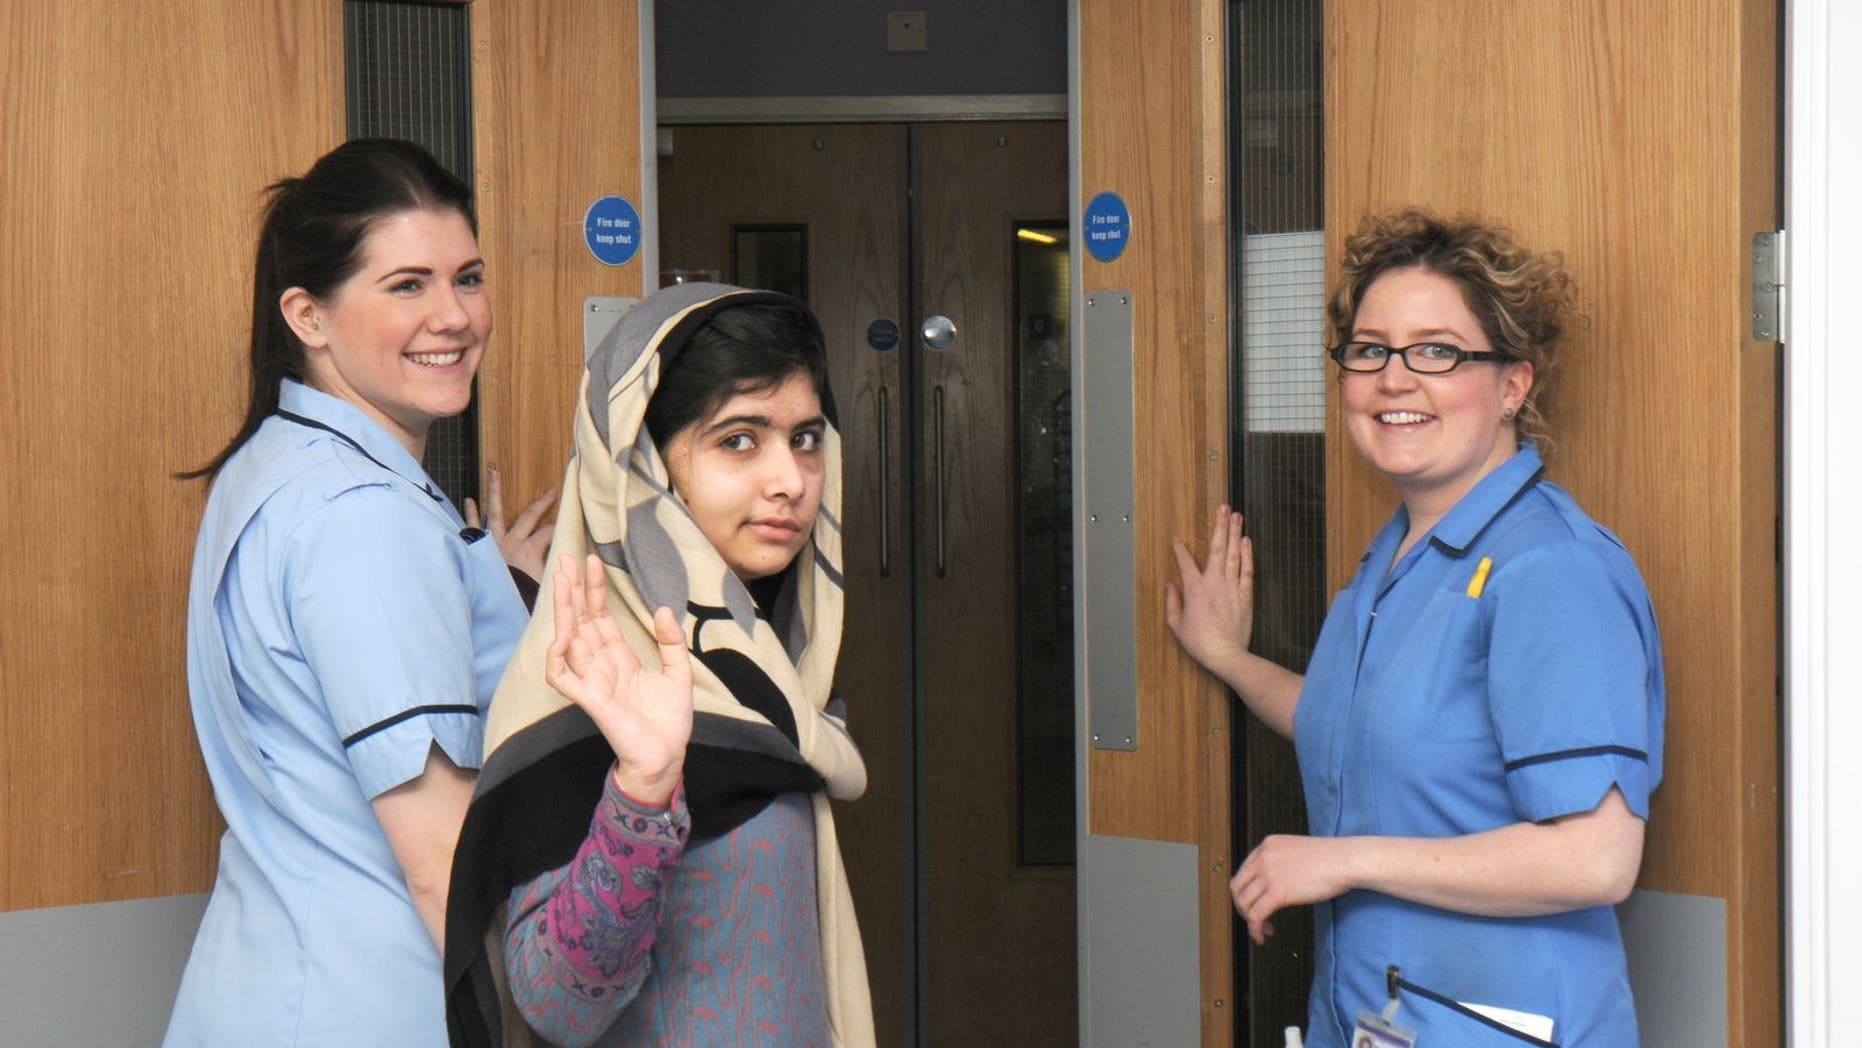 Jan. 4, 2013 - This photo made available by Queen Elizabeth Hospital, Birmingham, England shows Malala Yousufzai saying goodbye as she is discharged from the hospital.